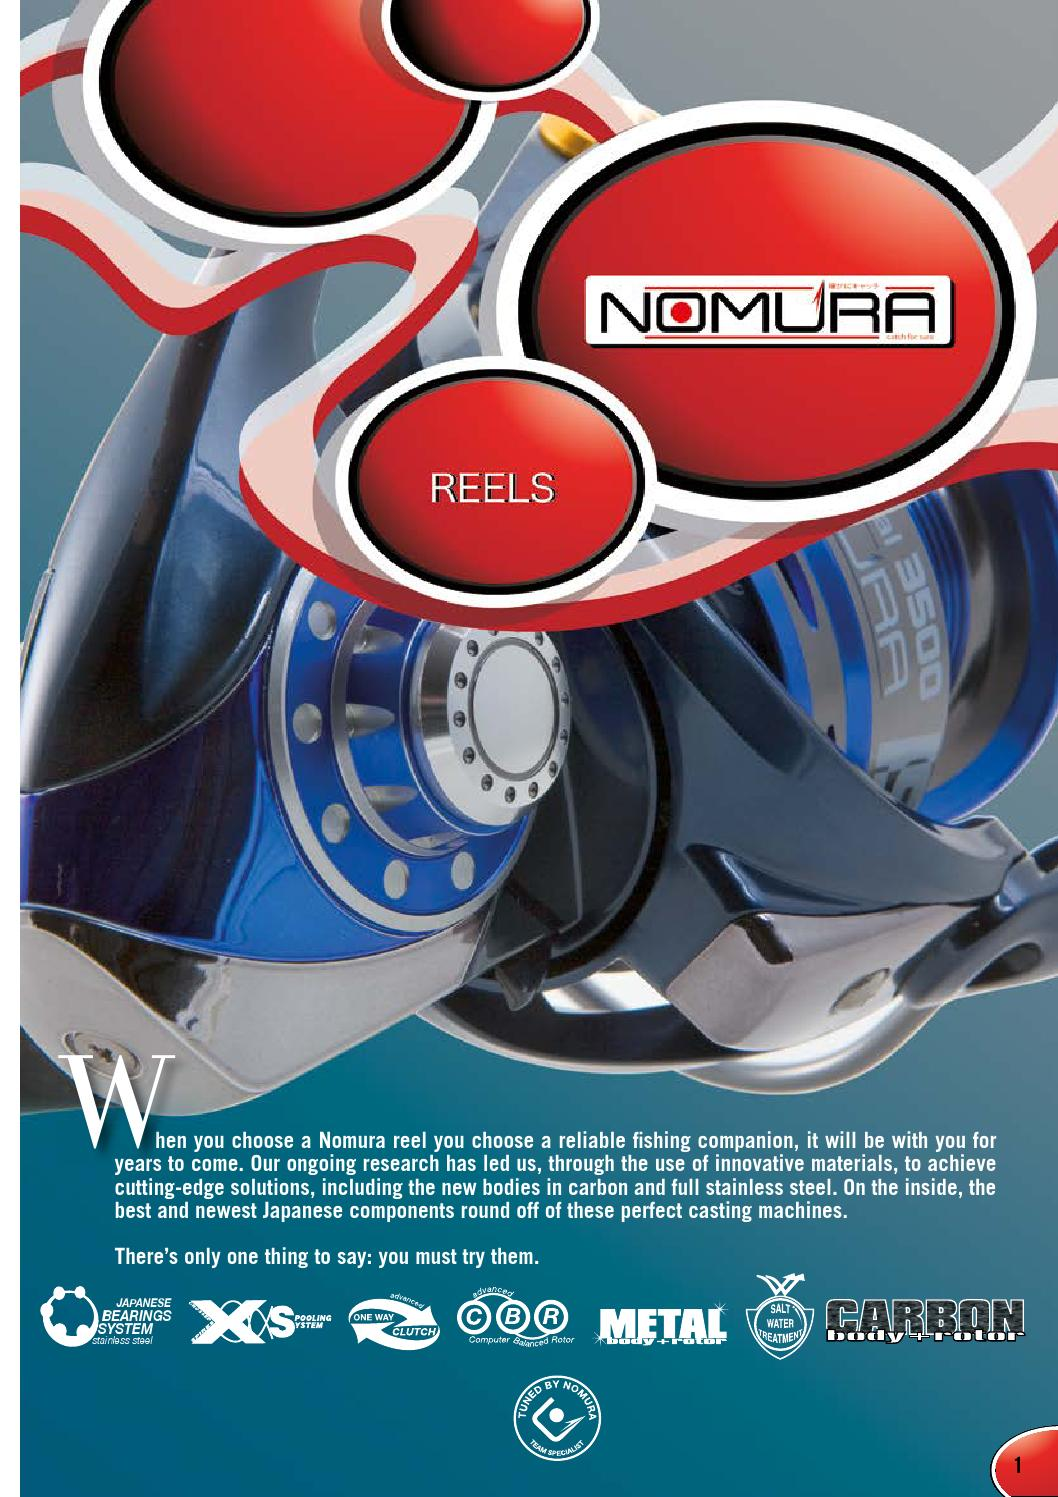 Nomura Catalogue 2016 By Goldfish Issuu Lure Minnow 85 Cm 68gr Crank Bait Treble Hook Crankbait